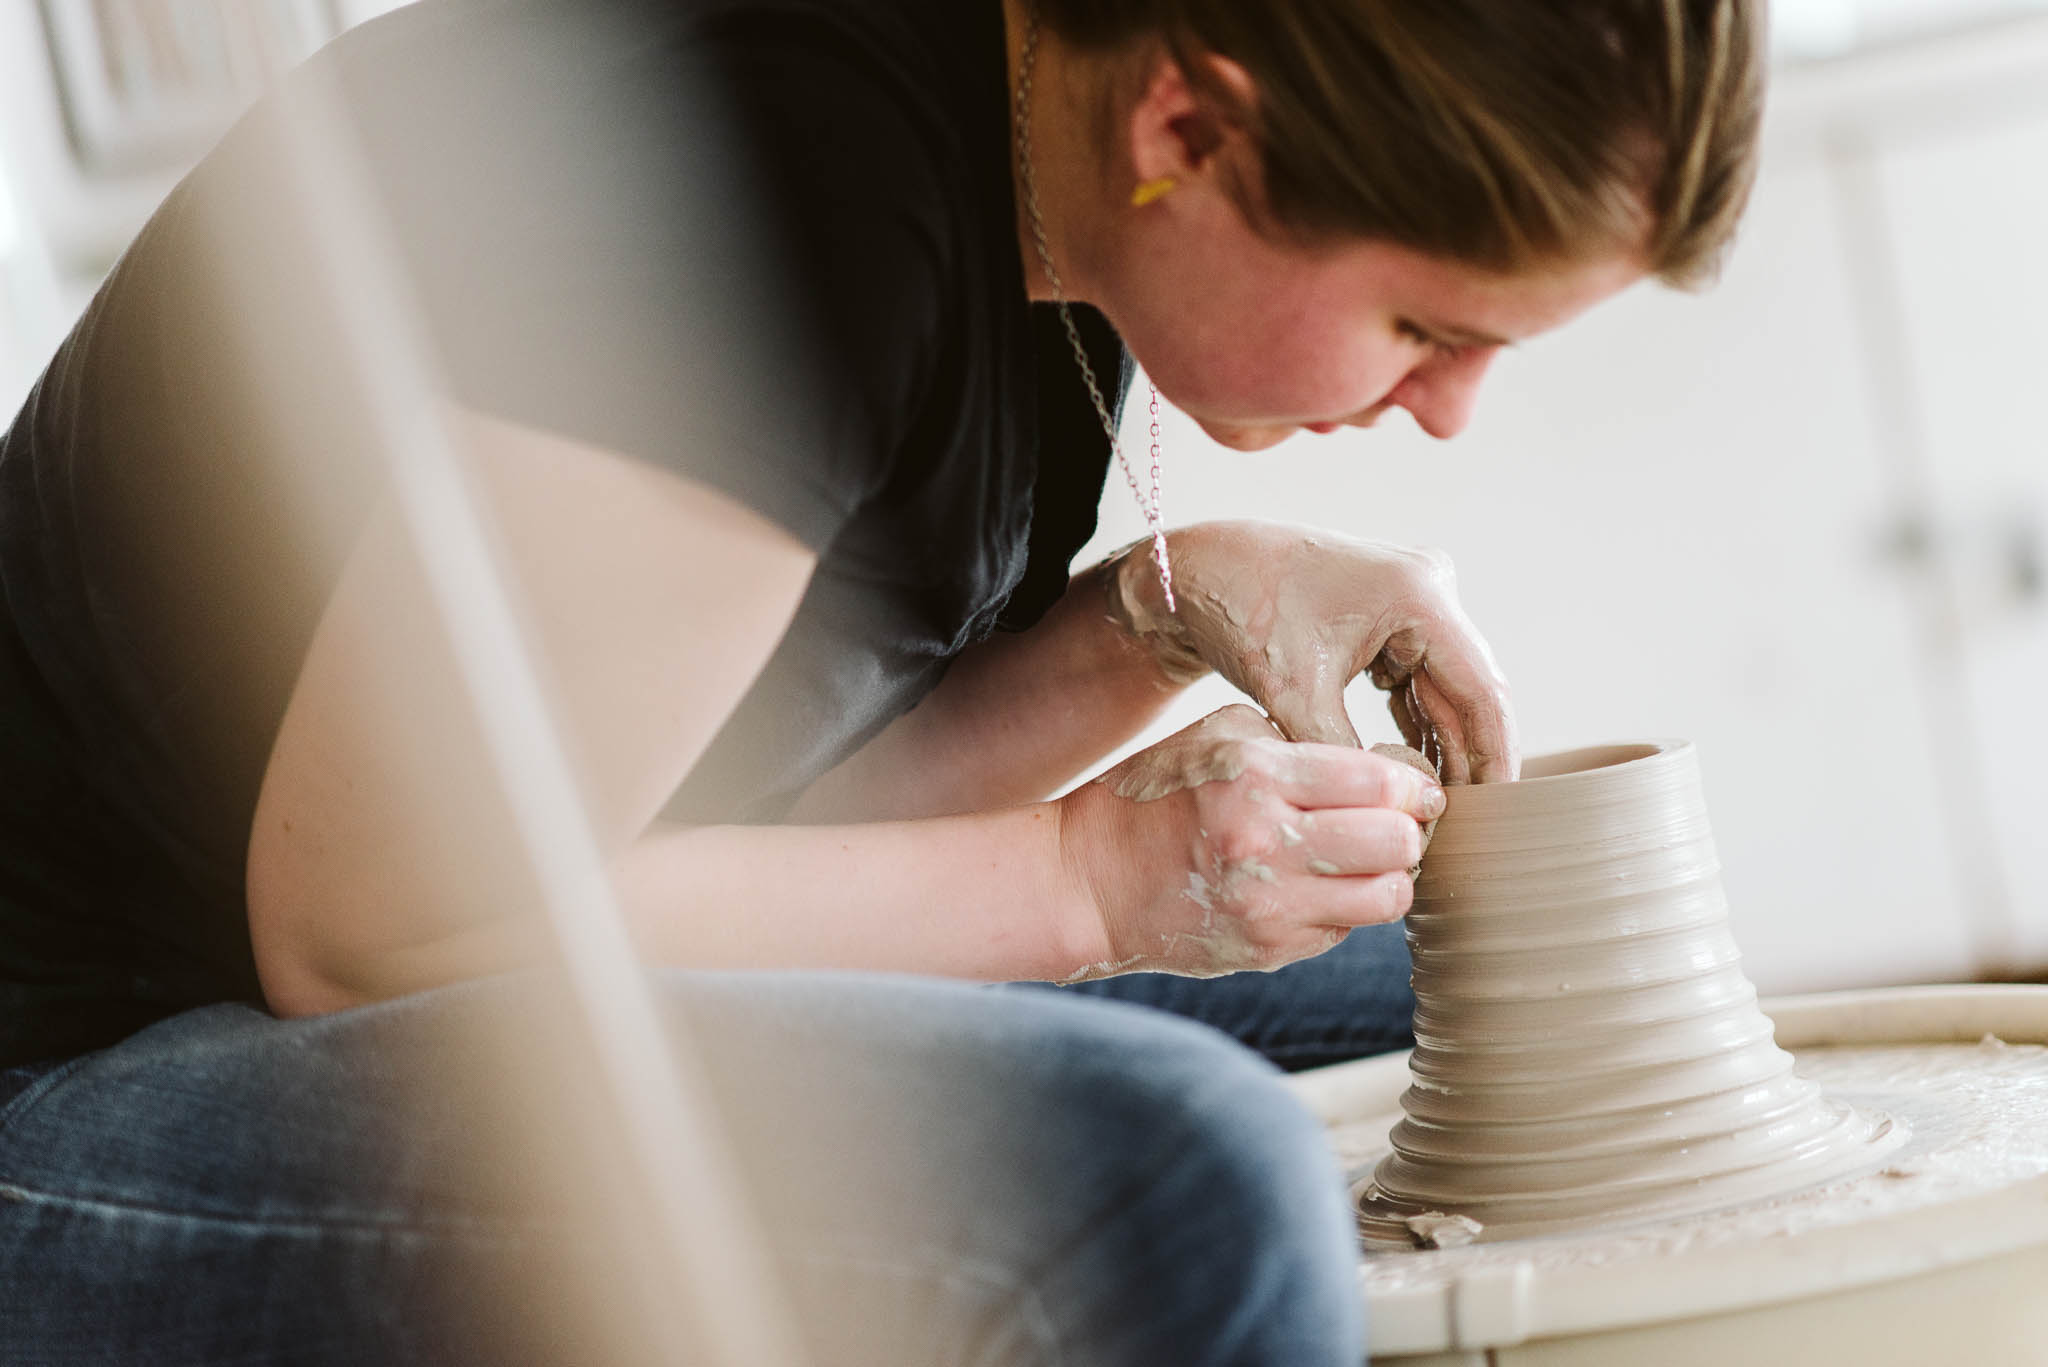 Kirsten-Smith-Photography-Reagan-Ashley-Pottery95.jpg